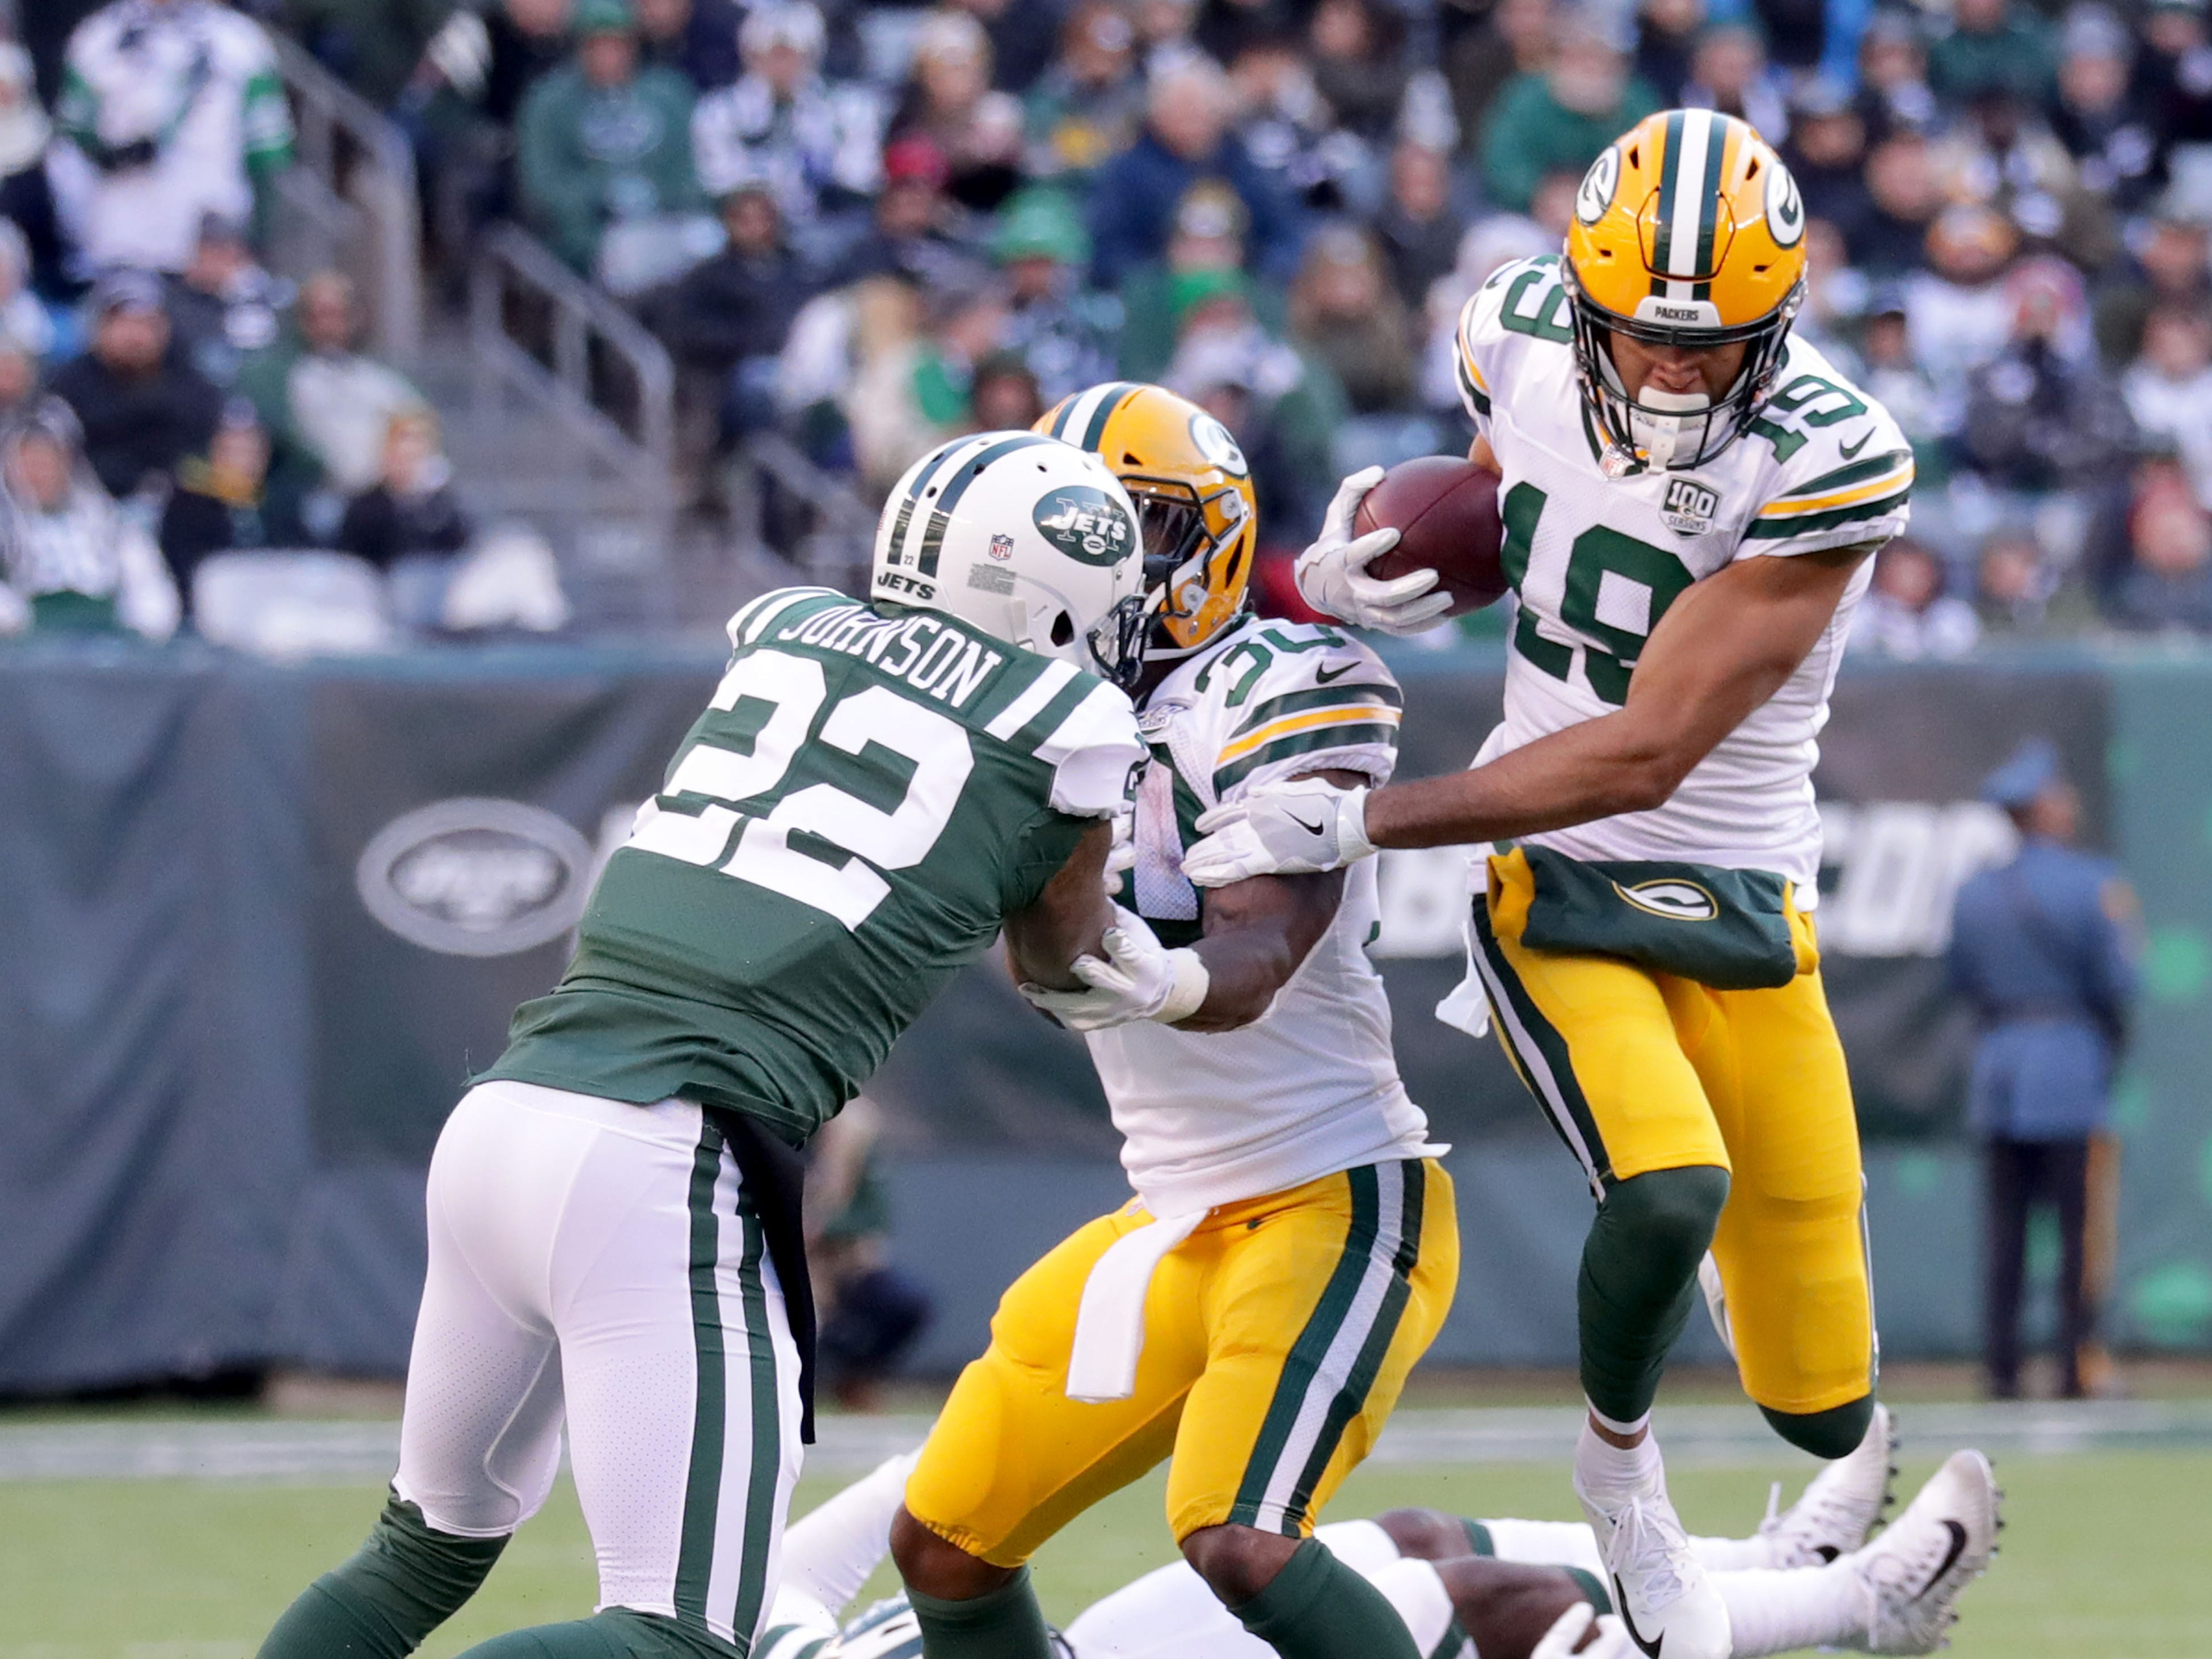 Green Bay Packers' Equanimeous St. Brown runs after the catch as Green Bay Packers' Jamaal Williams (30) blocks New York Jets' Trumaine Johnson (22) during the 2nd half of Packers 44-38 overtime win against the New York Jets at MetLife Stadium Sunday, Dec. 23, 2018, in East Rutherford.